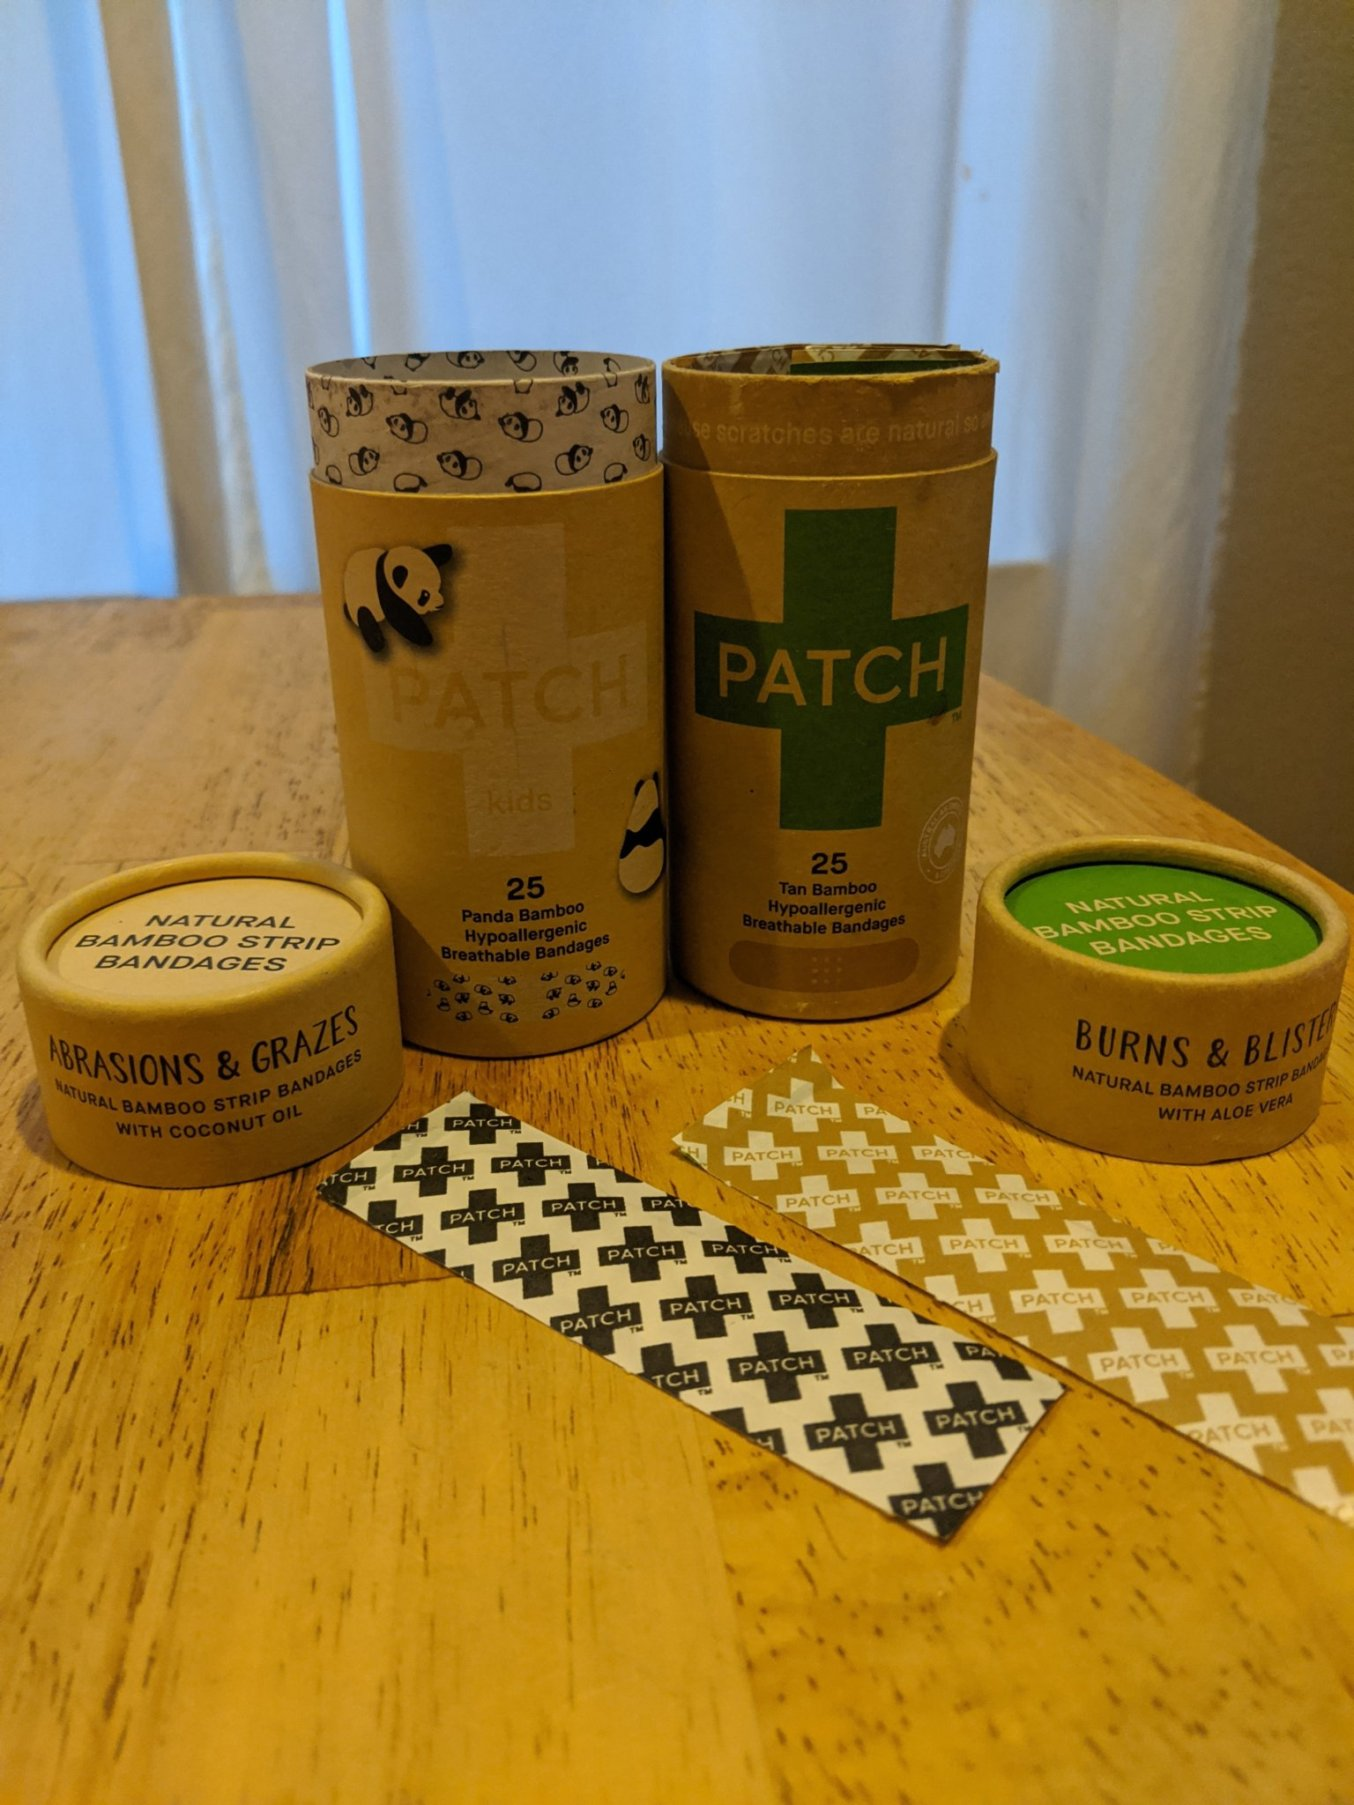 Product Review: Patch bandages